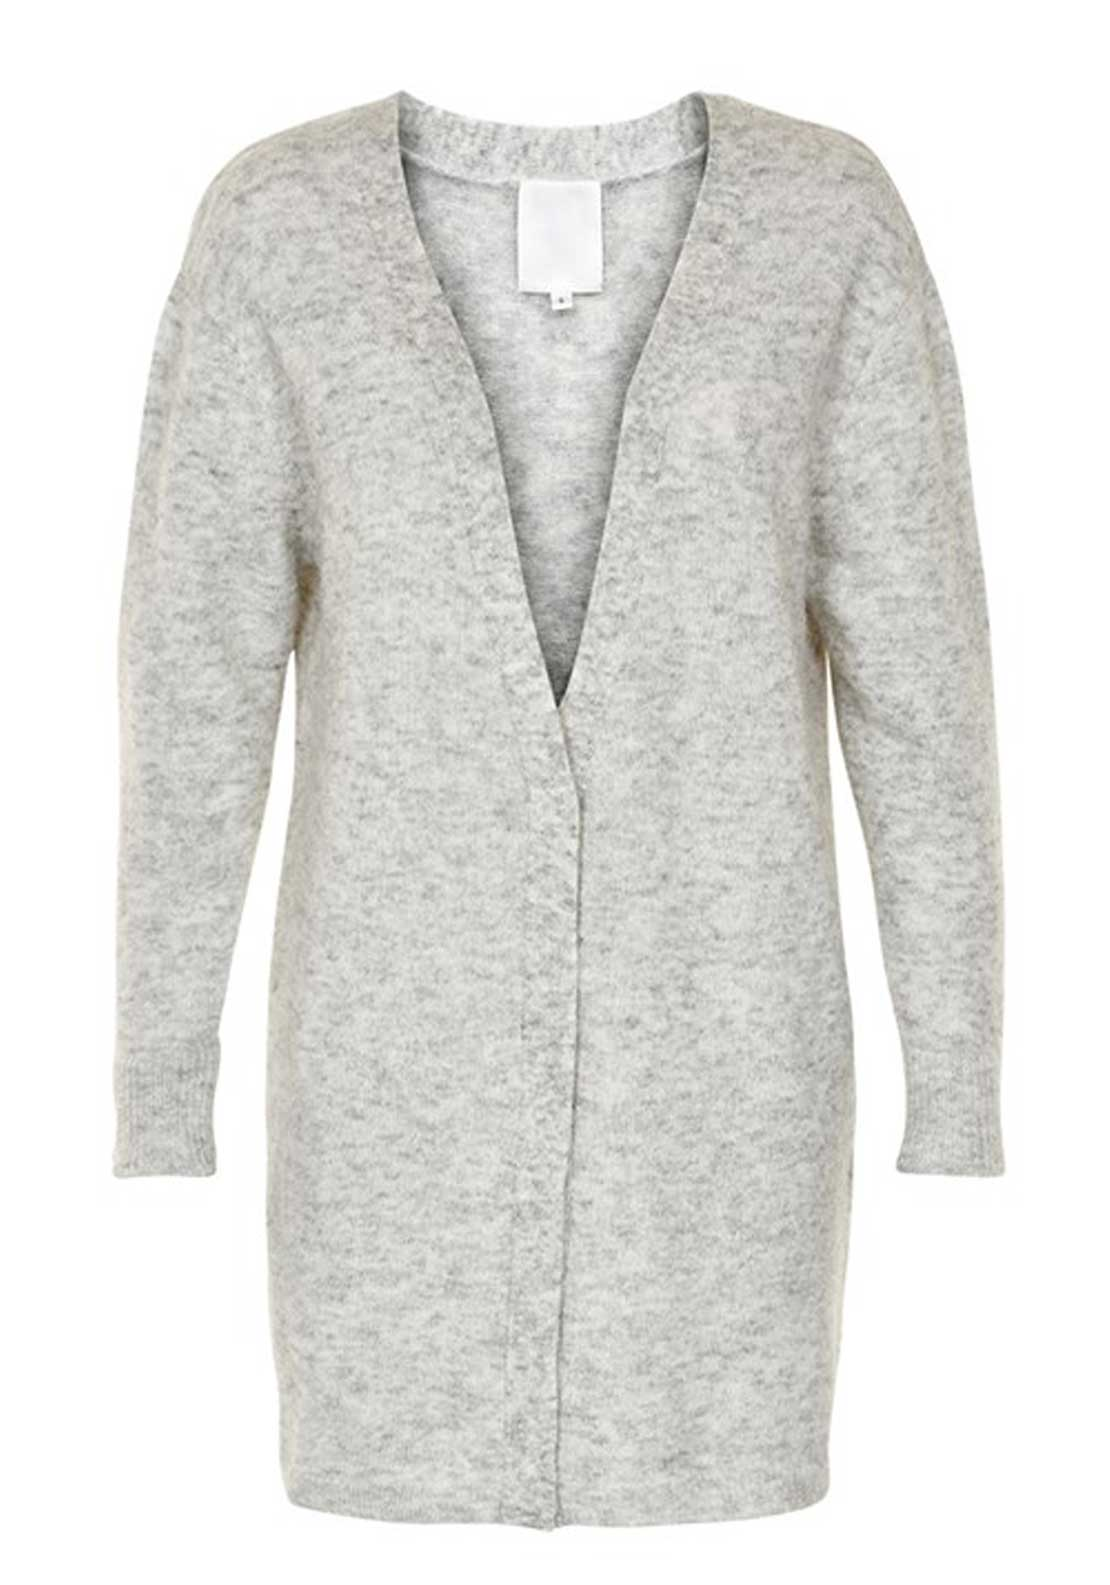 Inwear Panula Long Length Wool and Mohair Blend Cardigan, Light Grey